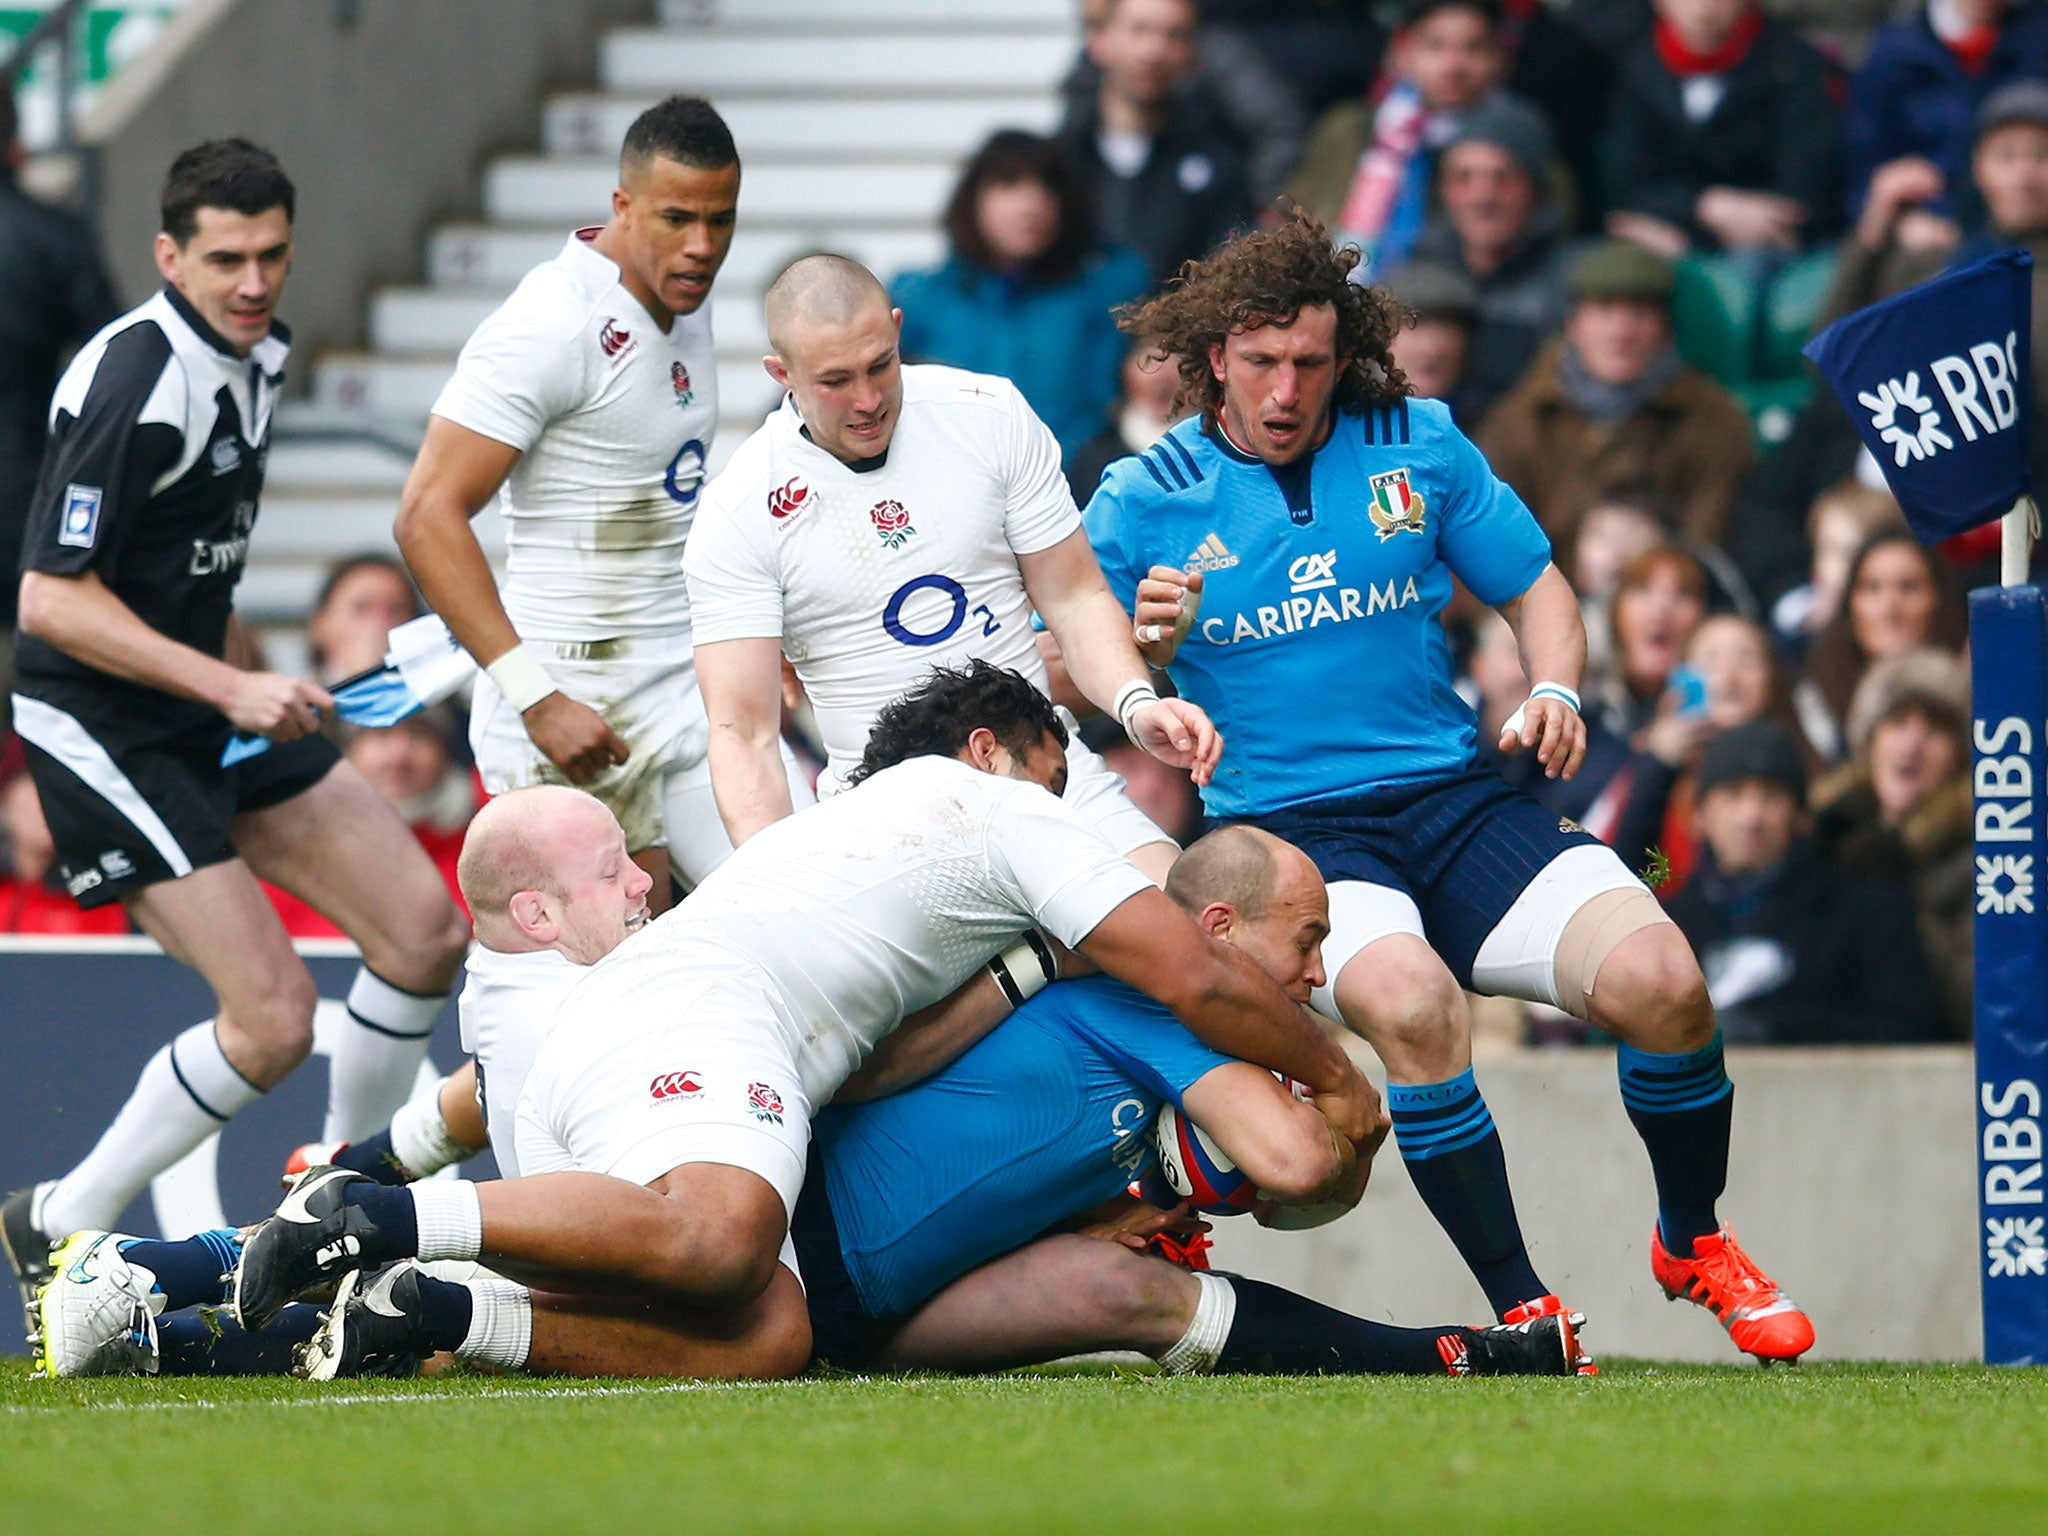 RWC 2015: When is the Rugby World Cup final and what times